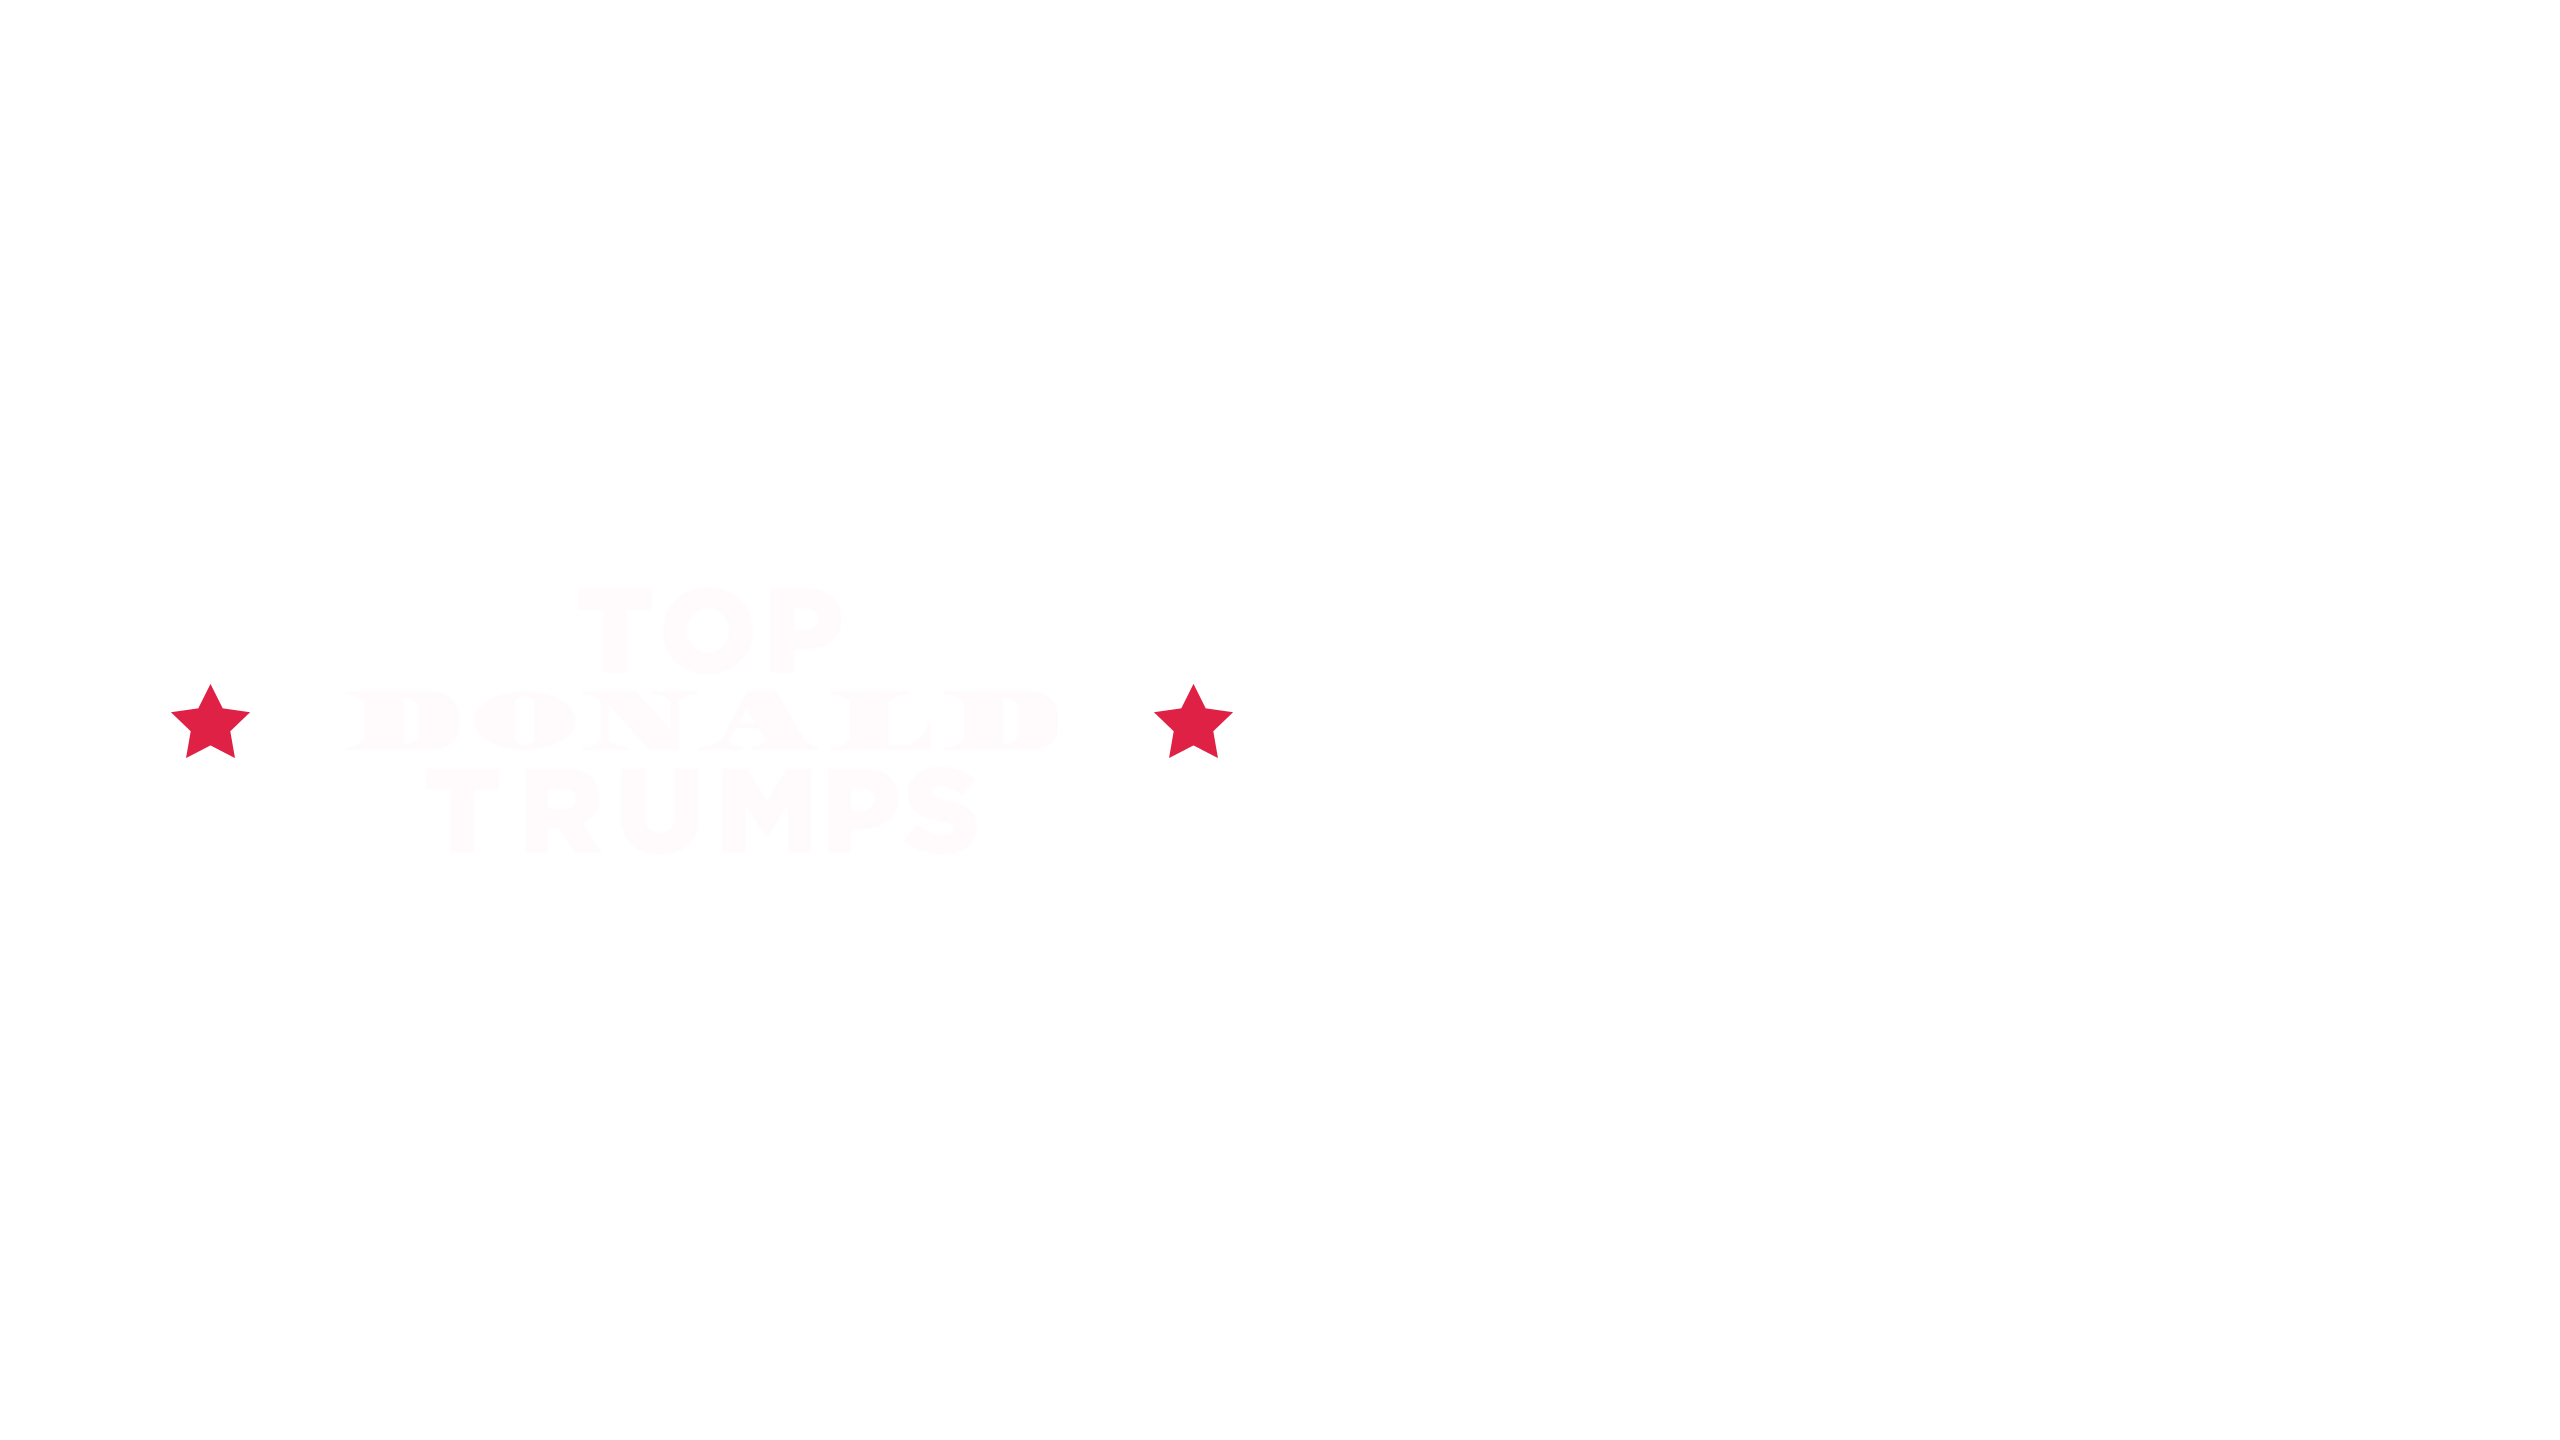 Top Donald Trumps